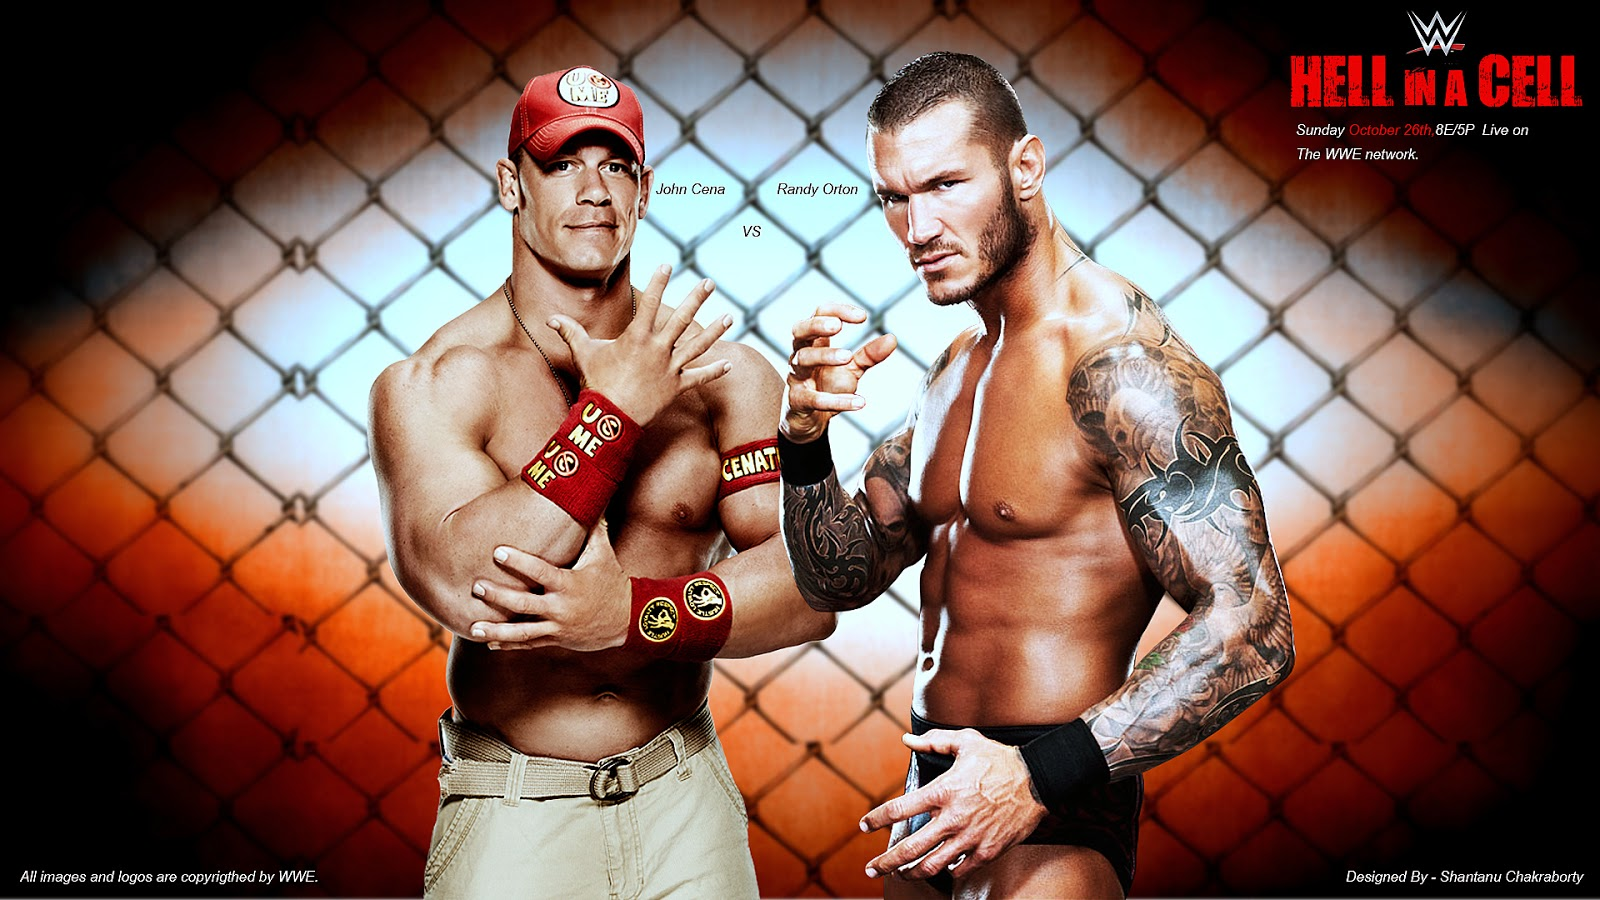 Hell In A Cell 2014 — John Cena vs Randy Orton Match Card Wallpaper (Designed by Shantanu Chakraborty)